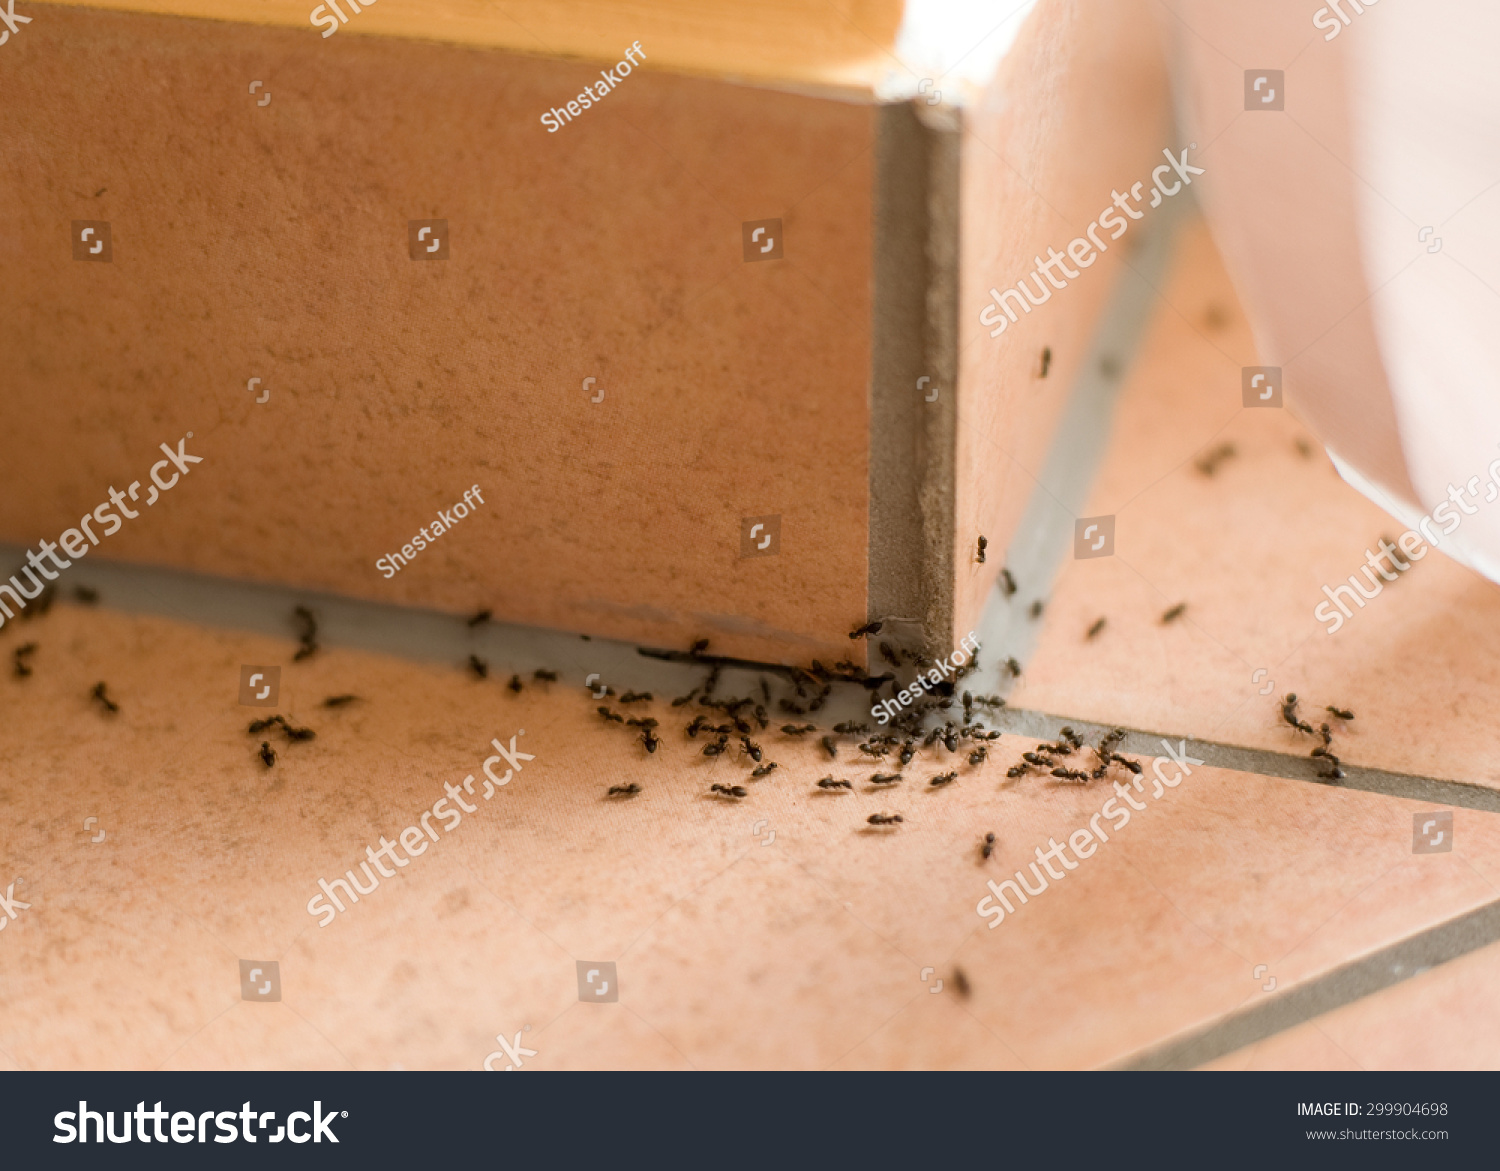 how to kill ants inside home